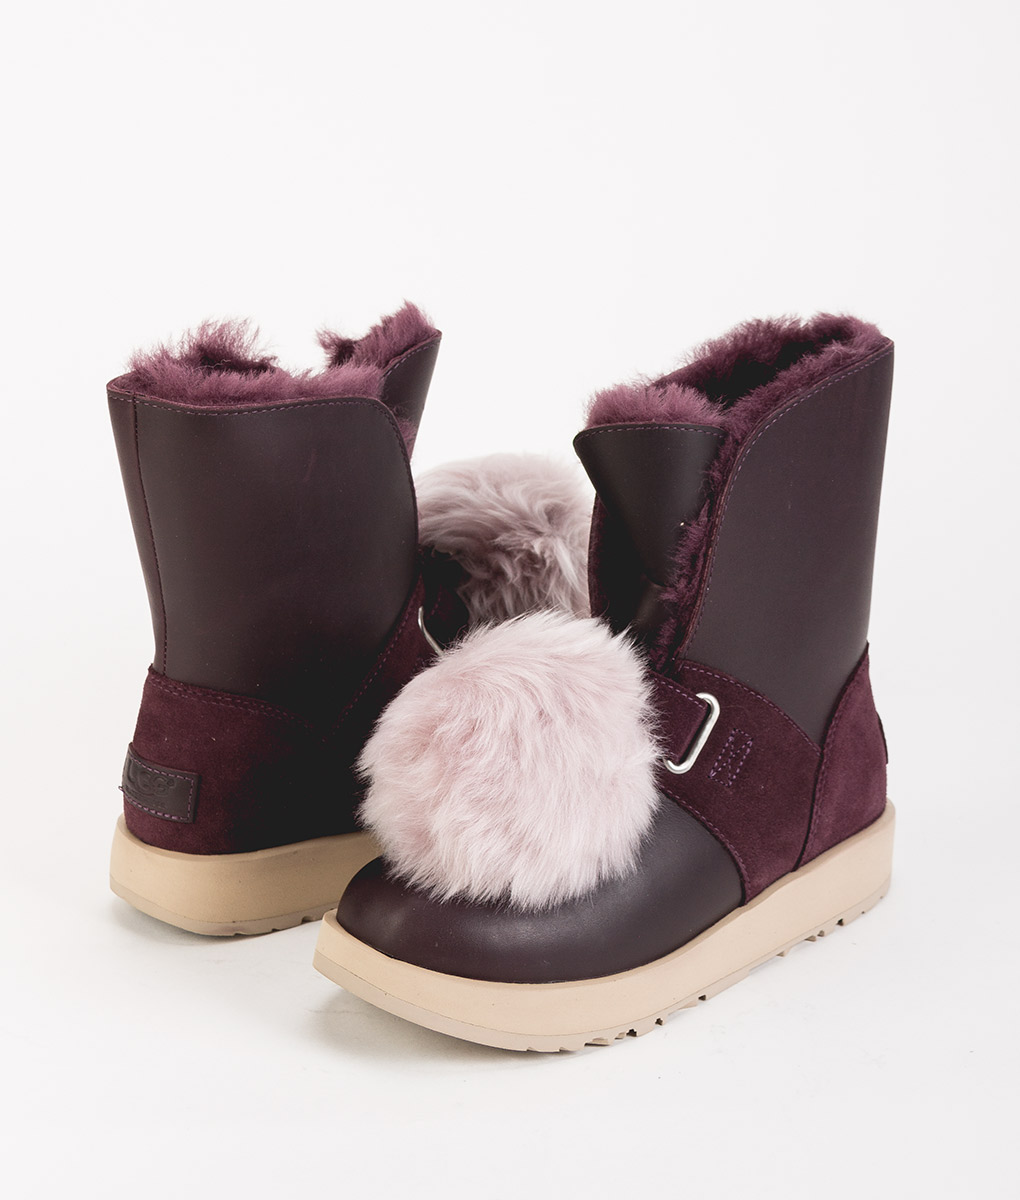 UGG Women Ankle Boots 1018217 ISLEY WATERPROOF, Port 269.99 1